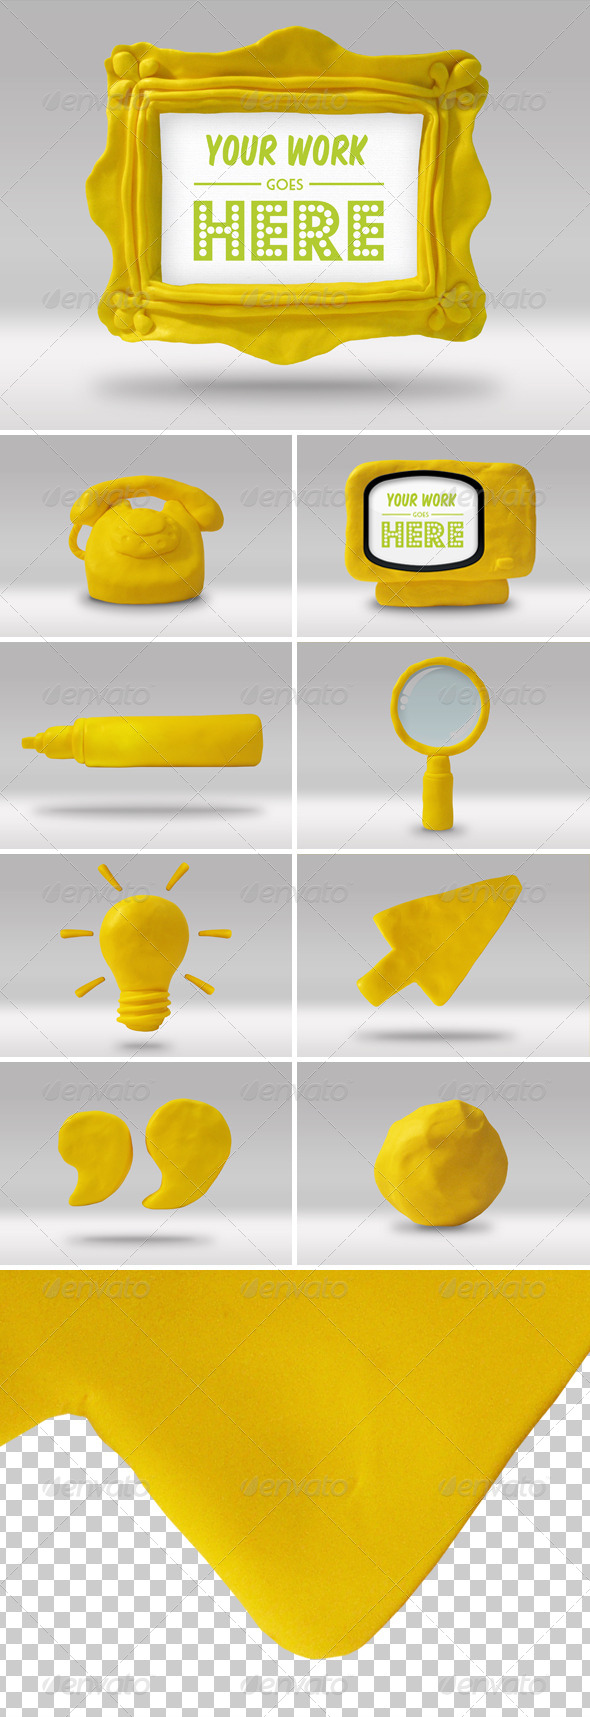 Set of 9 Handmade High-res Play Doh Icons